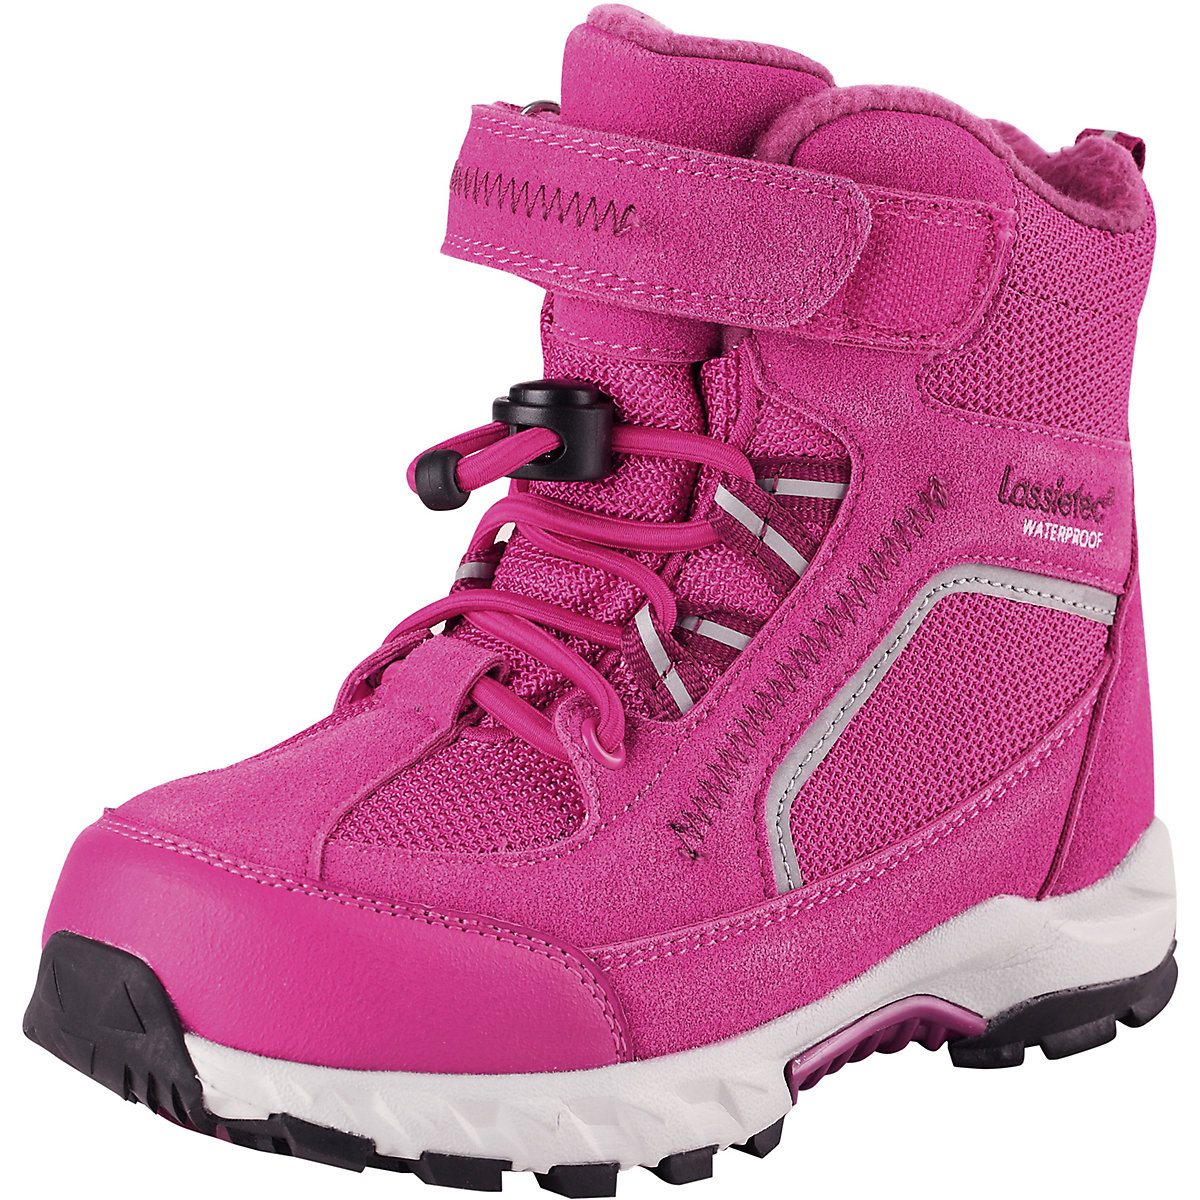 Boots LASSIE for girls 8623239 Valenki Uggi Winter shoes Children Kids boots lassie for girls 8622674 valenki uggi winter baby shoes kids